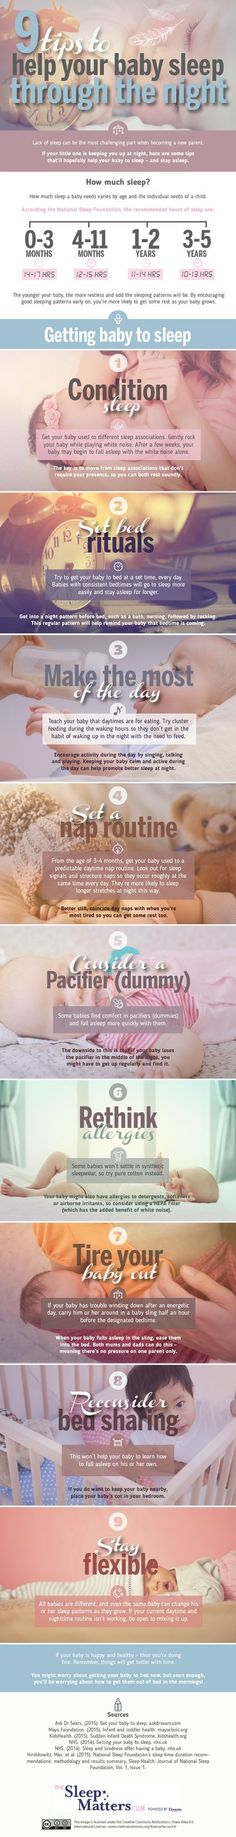 9 Tips to help your baby to sleep at night from Daily Infographic:  If there's one consistent theme in parenting, it's that nothing works for everyone, so try a bunch of stuff to see what works.